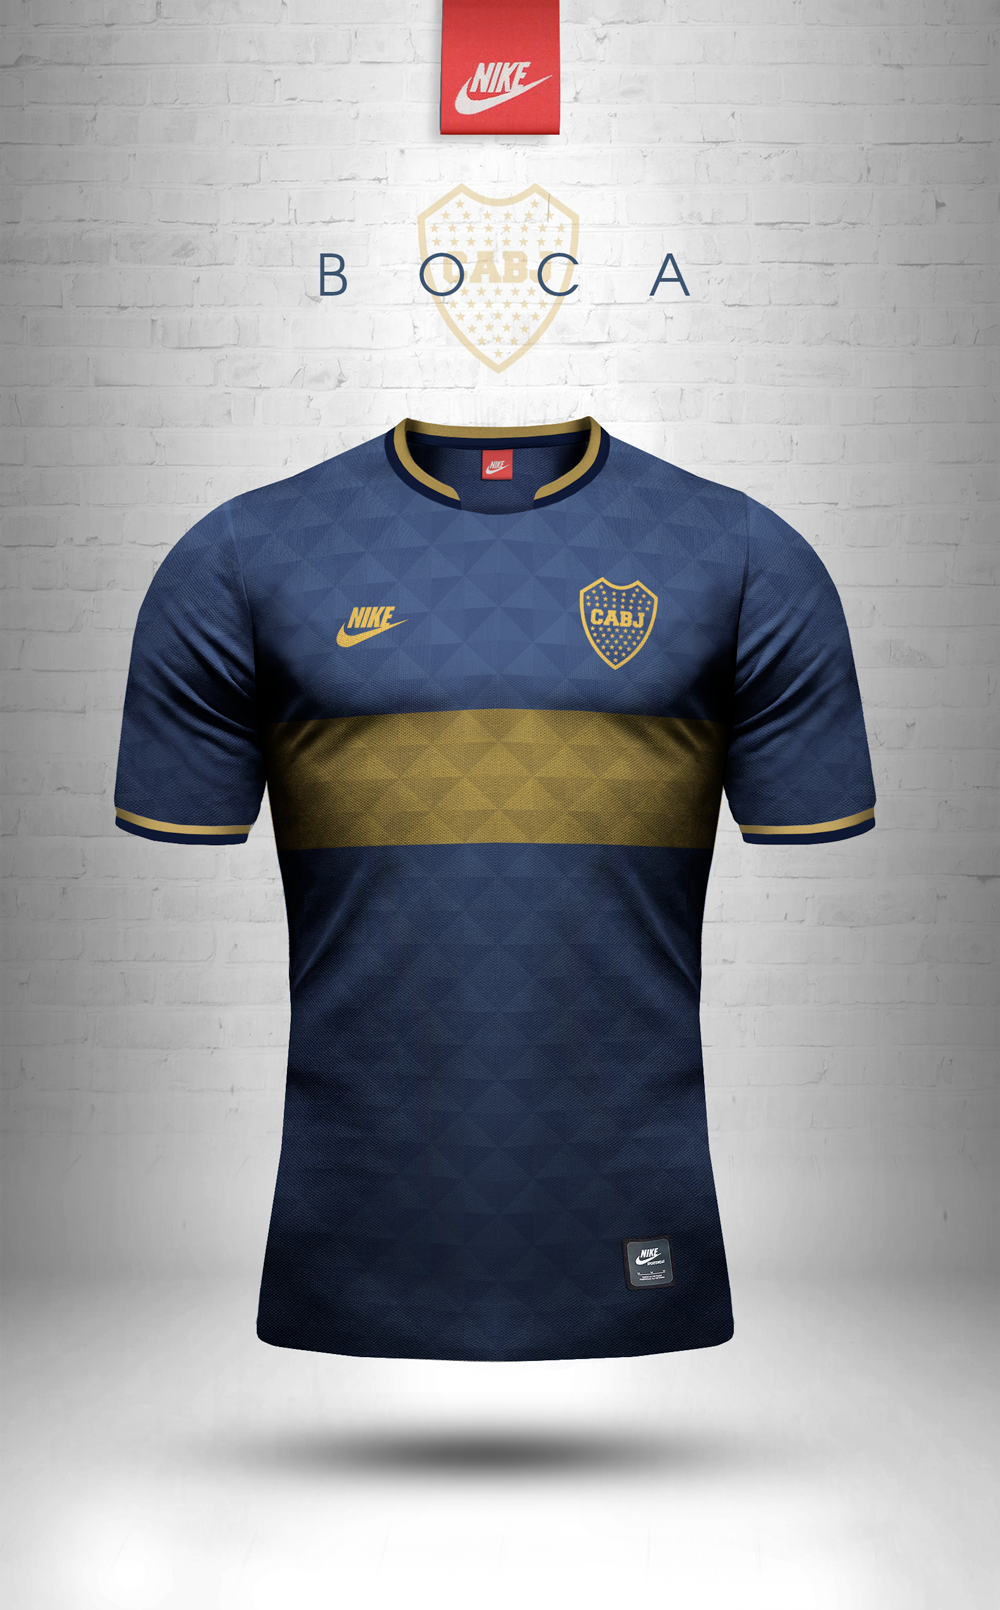 Adidas Originals and Nike Sportswear jersey design concepts